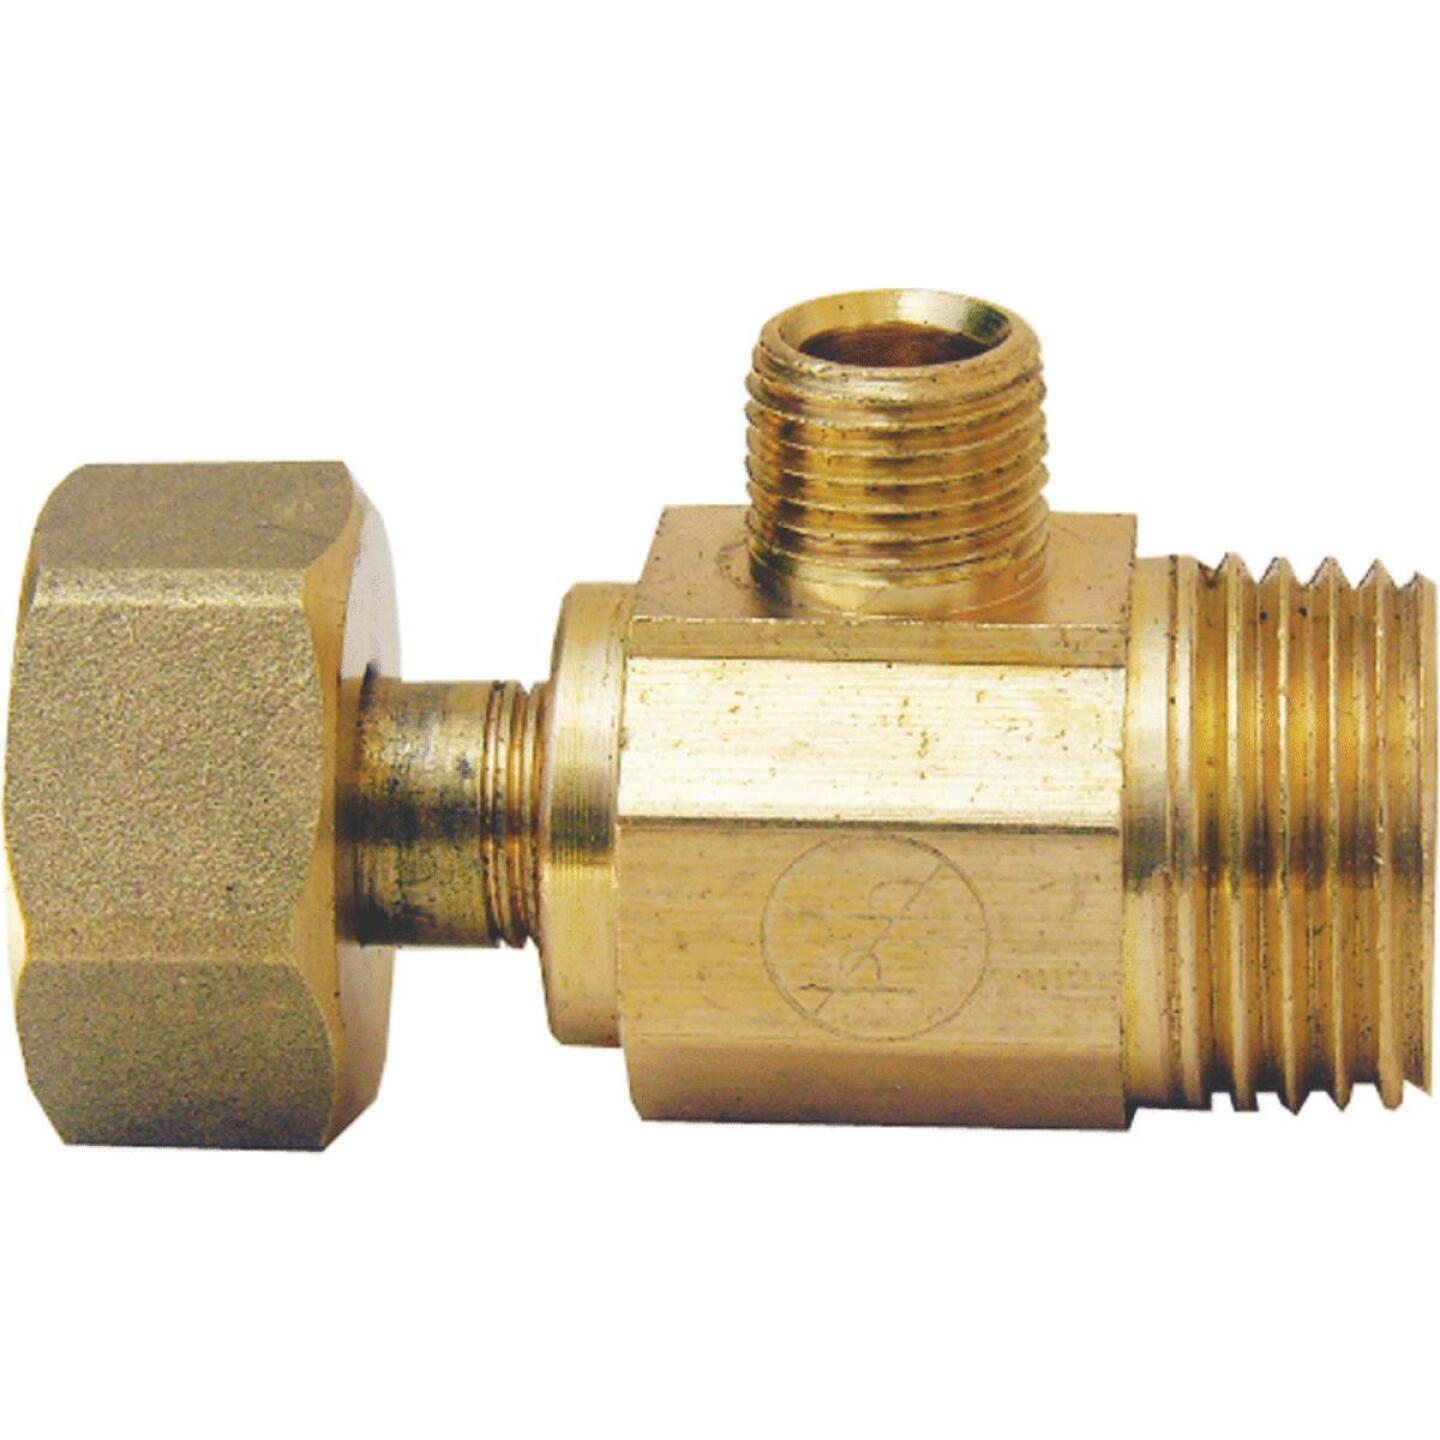 Lasco 1/2 In. IP Inlet x 1/2 In. IP Outlet x 1/4 In. C Outlet Brass Extender Tee Image 1